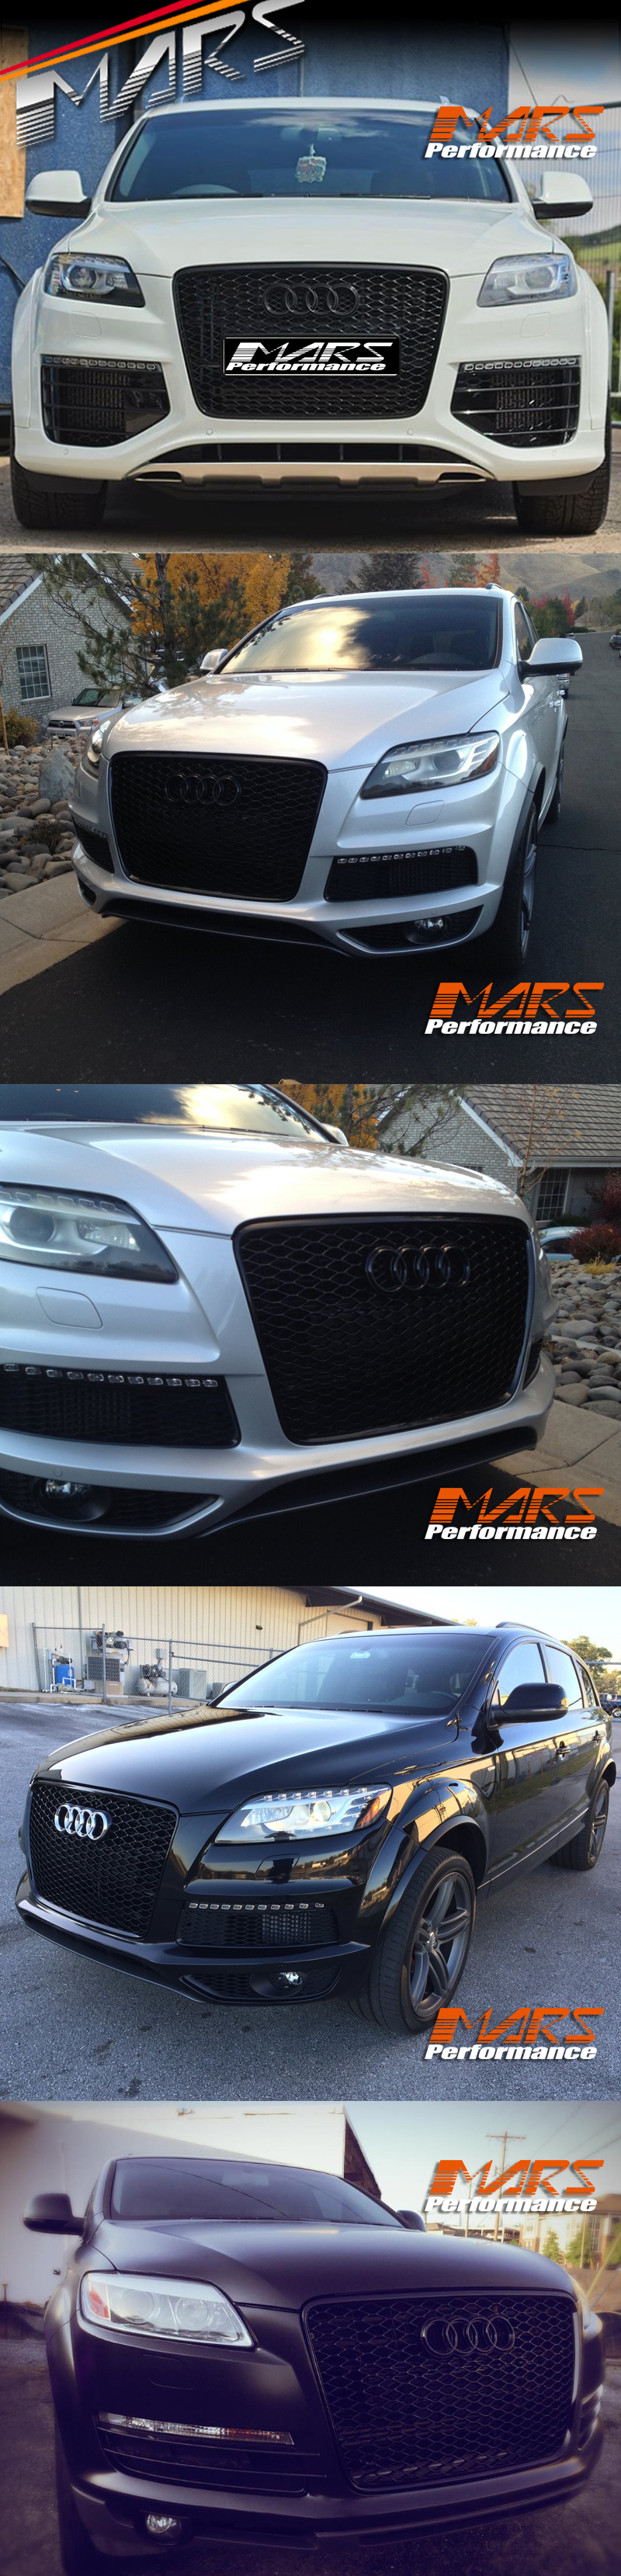 Details about Gloss Black Honeycomb RS-Q7 Style Front Bumper Grille Grill  for AUDI Q7 06-15